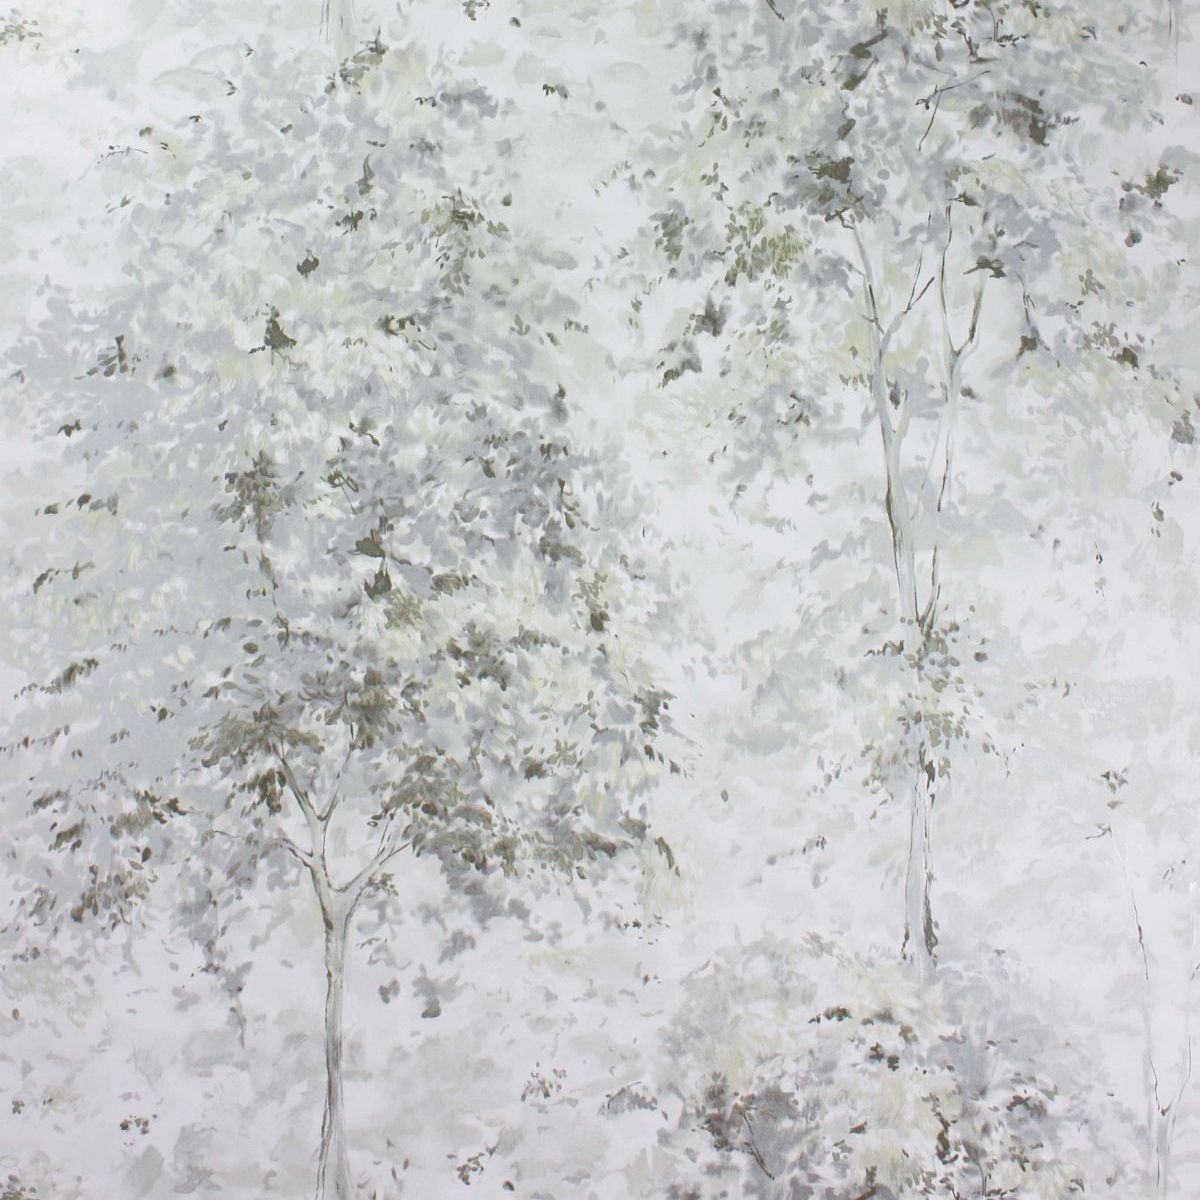 paper-backing wallpaper Nina Campbell Rosslyn Wallpapers NCW4152-05 | paper-backing